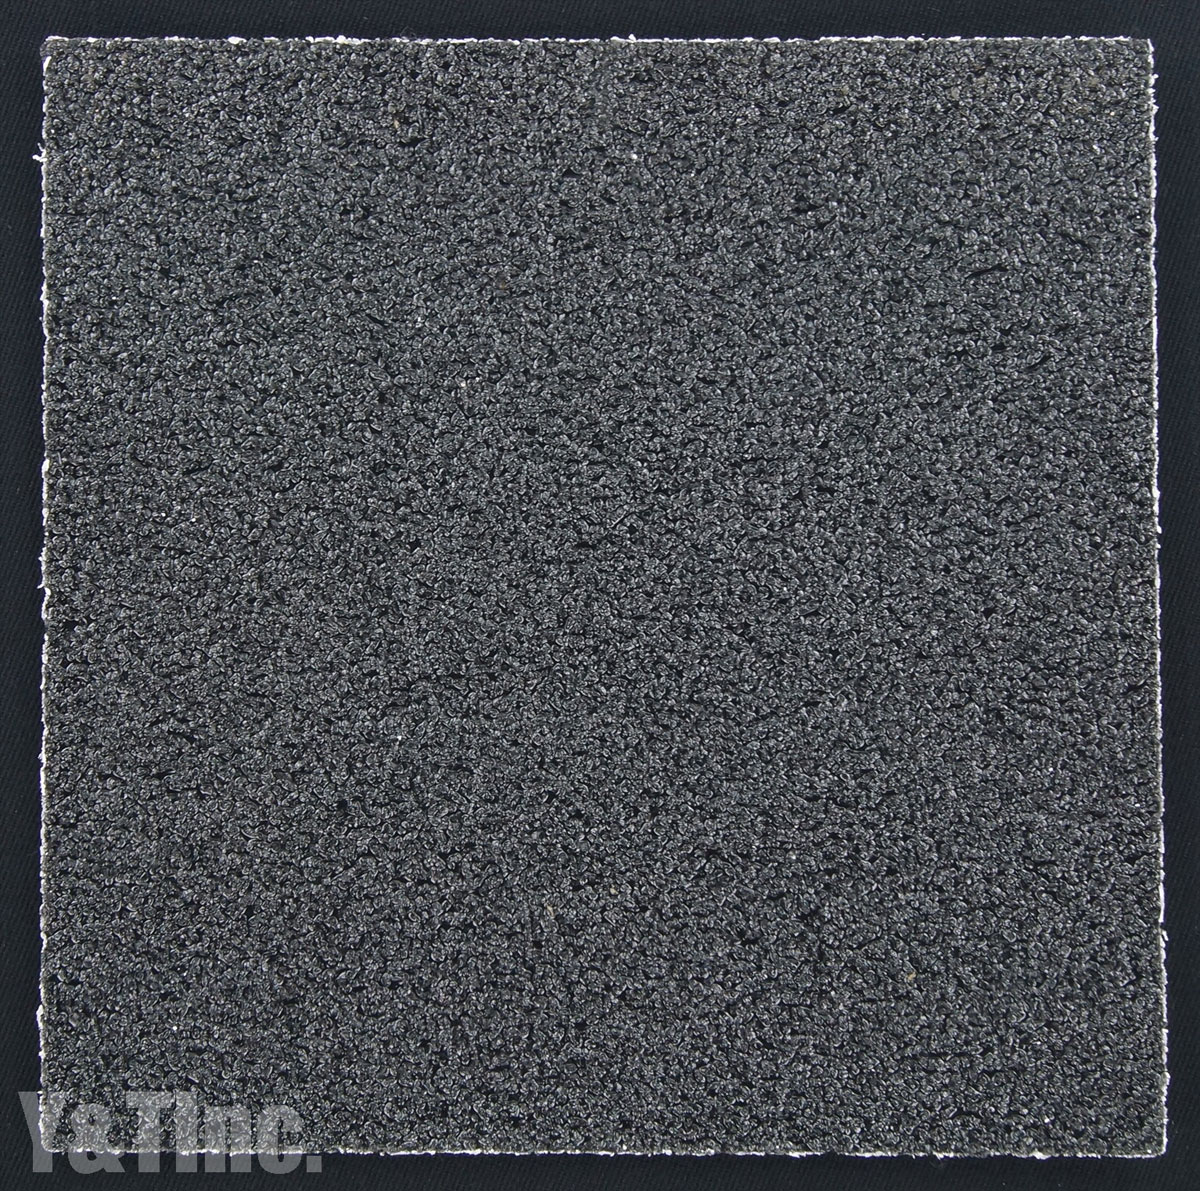 BLANK HARD GRIP 11x11 BLACK 1